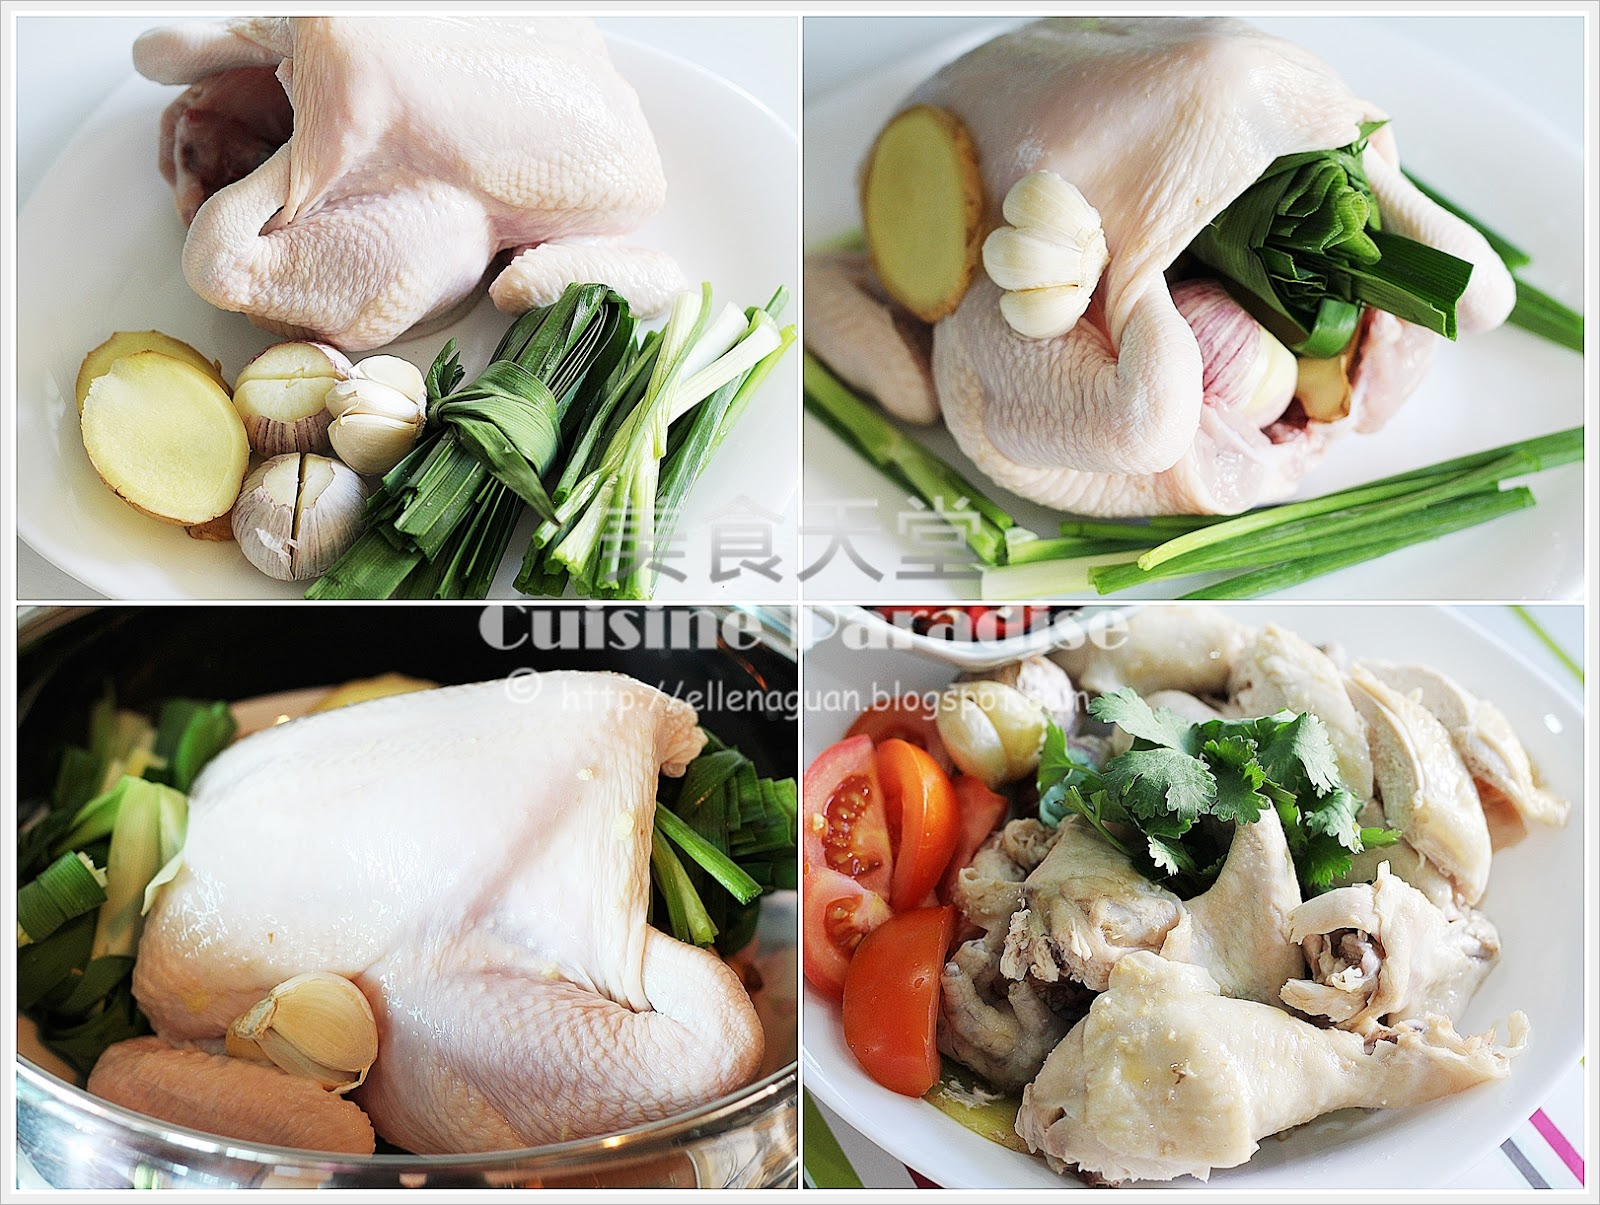 Cuisine paradise singapore food blog recipes reviews and travel steamed chicken with garlic and pandan leaves forumfinder Images